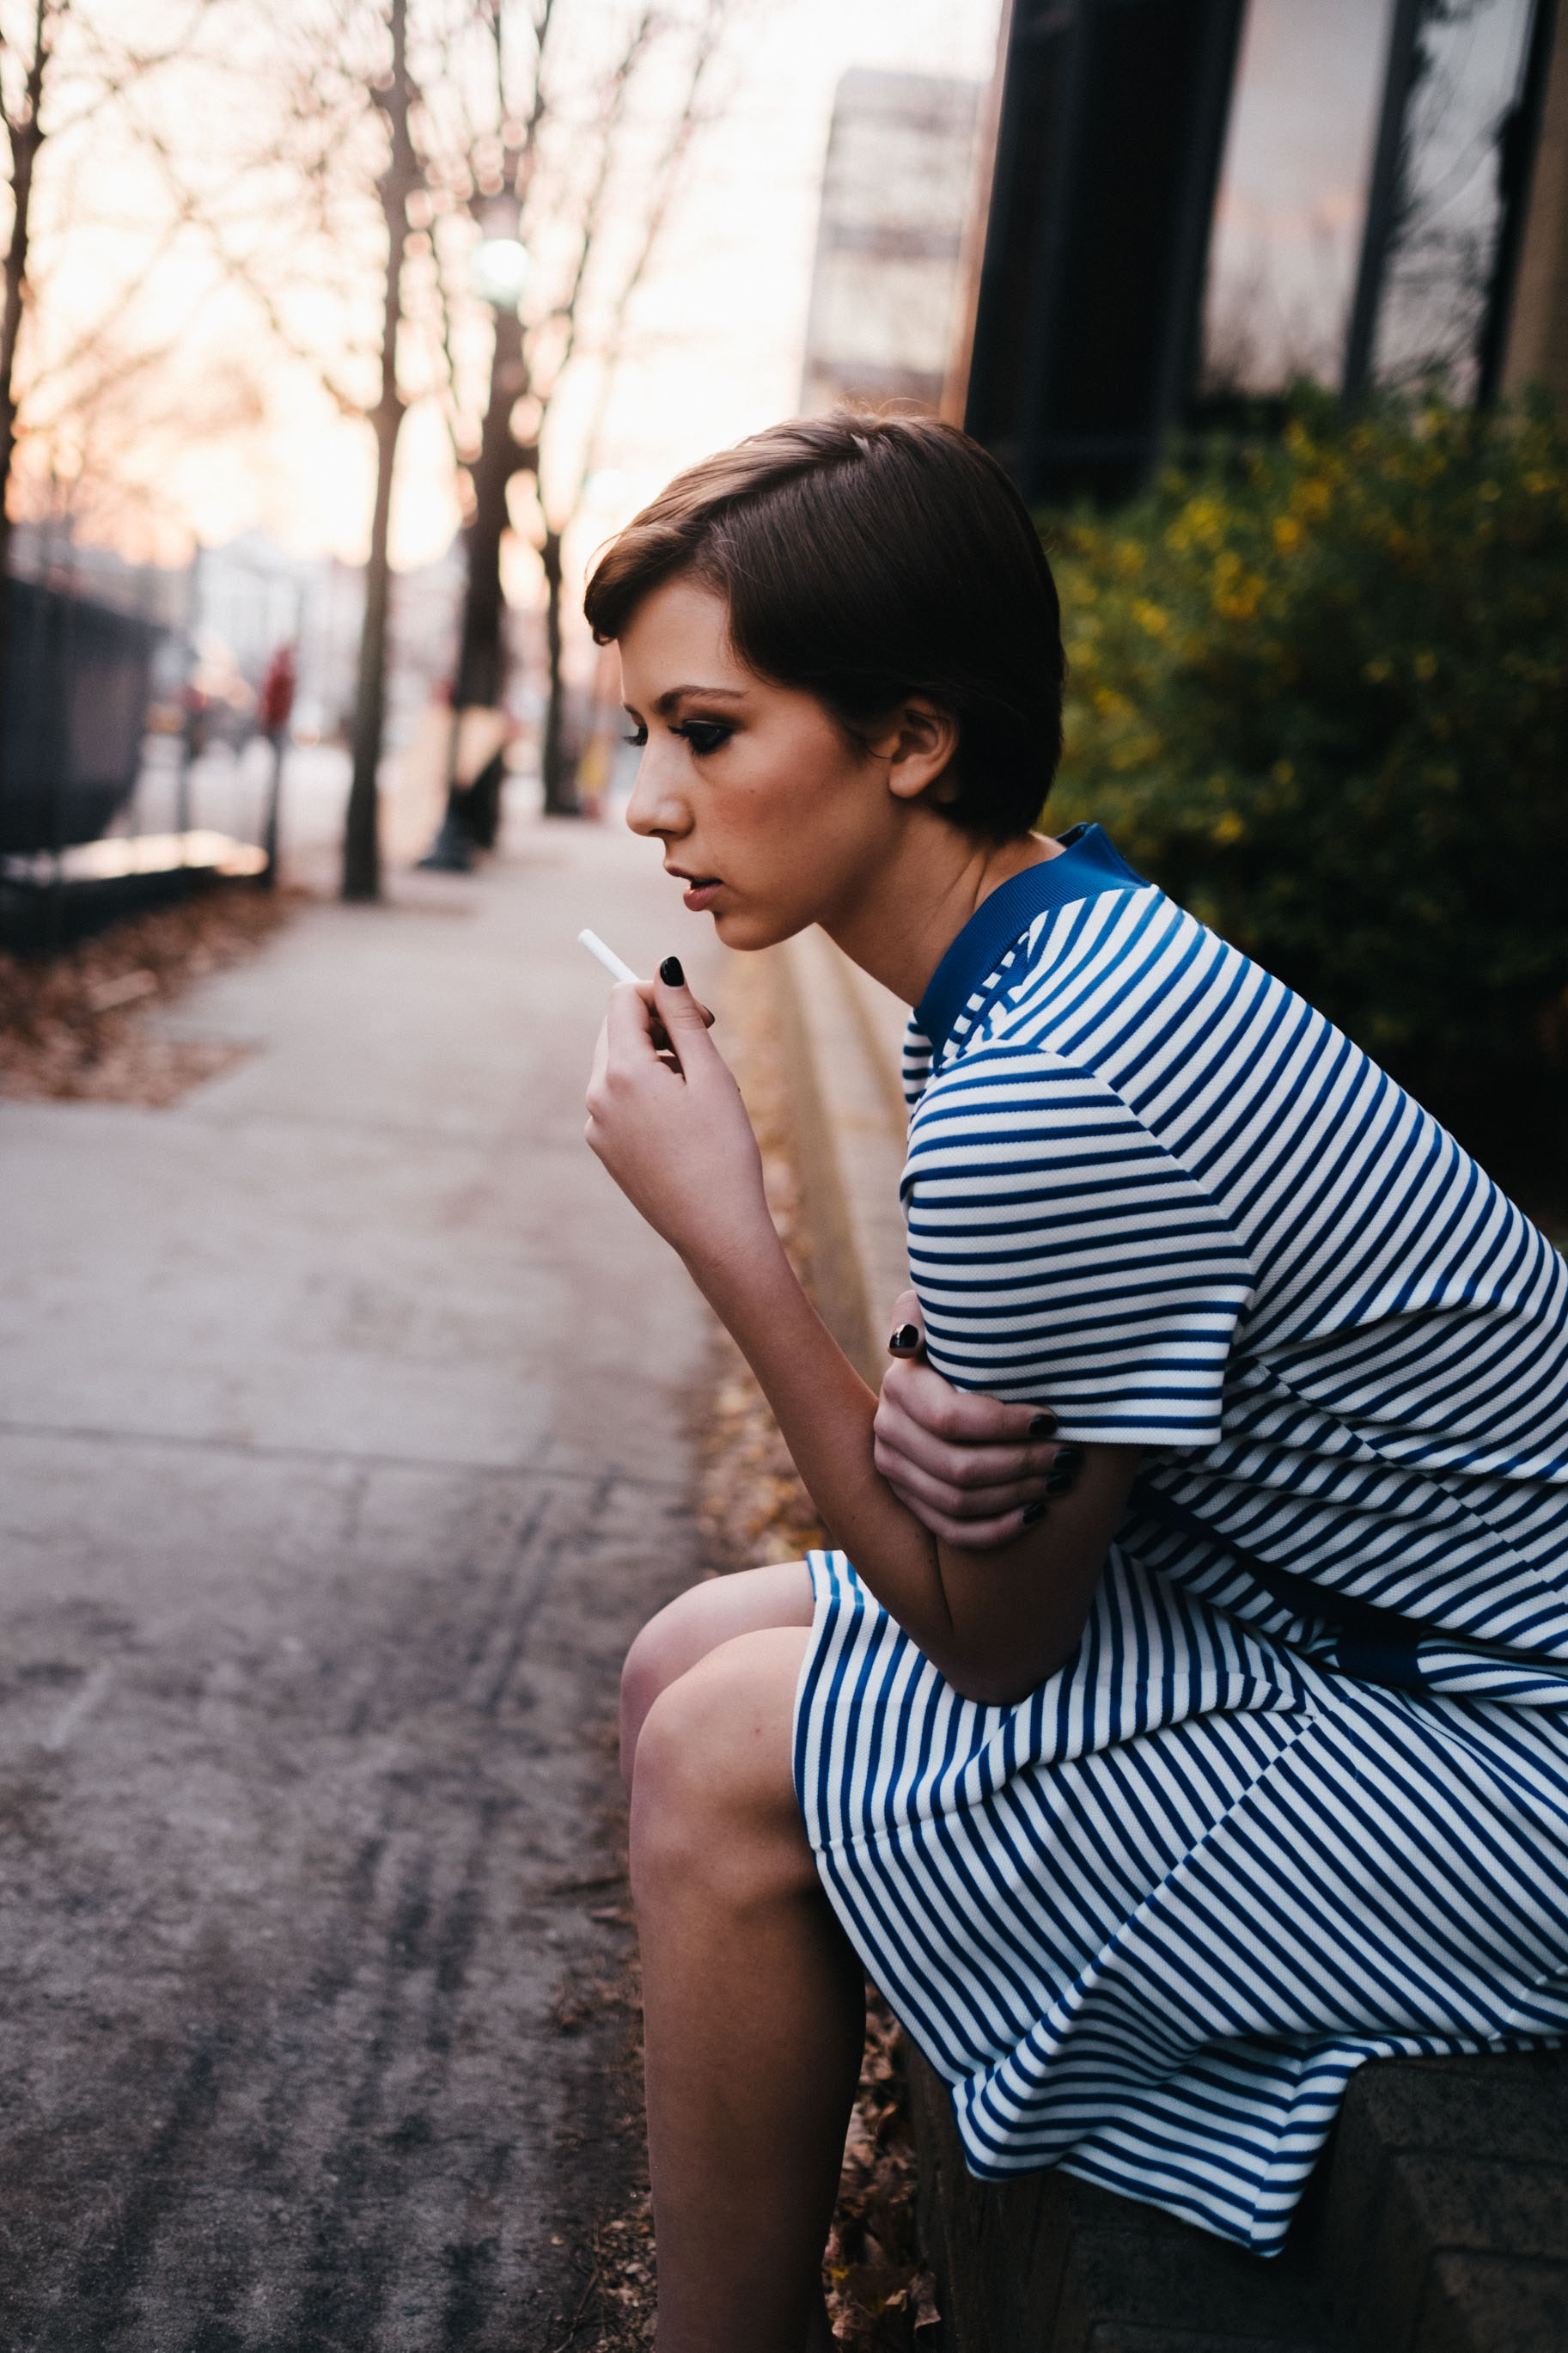 woman sitting down while smoking cigarette